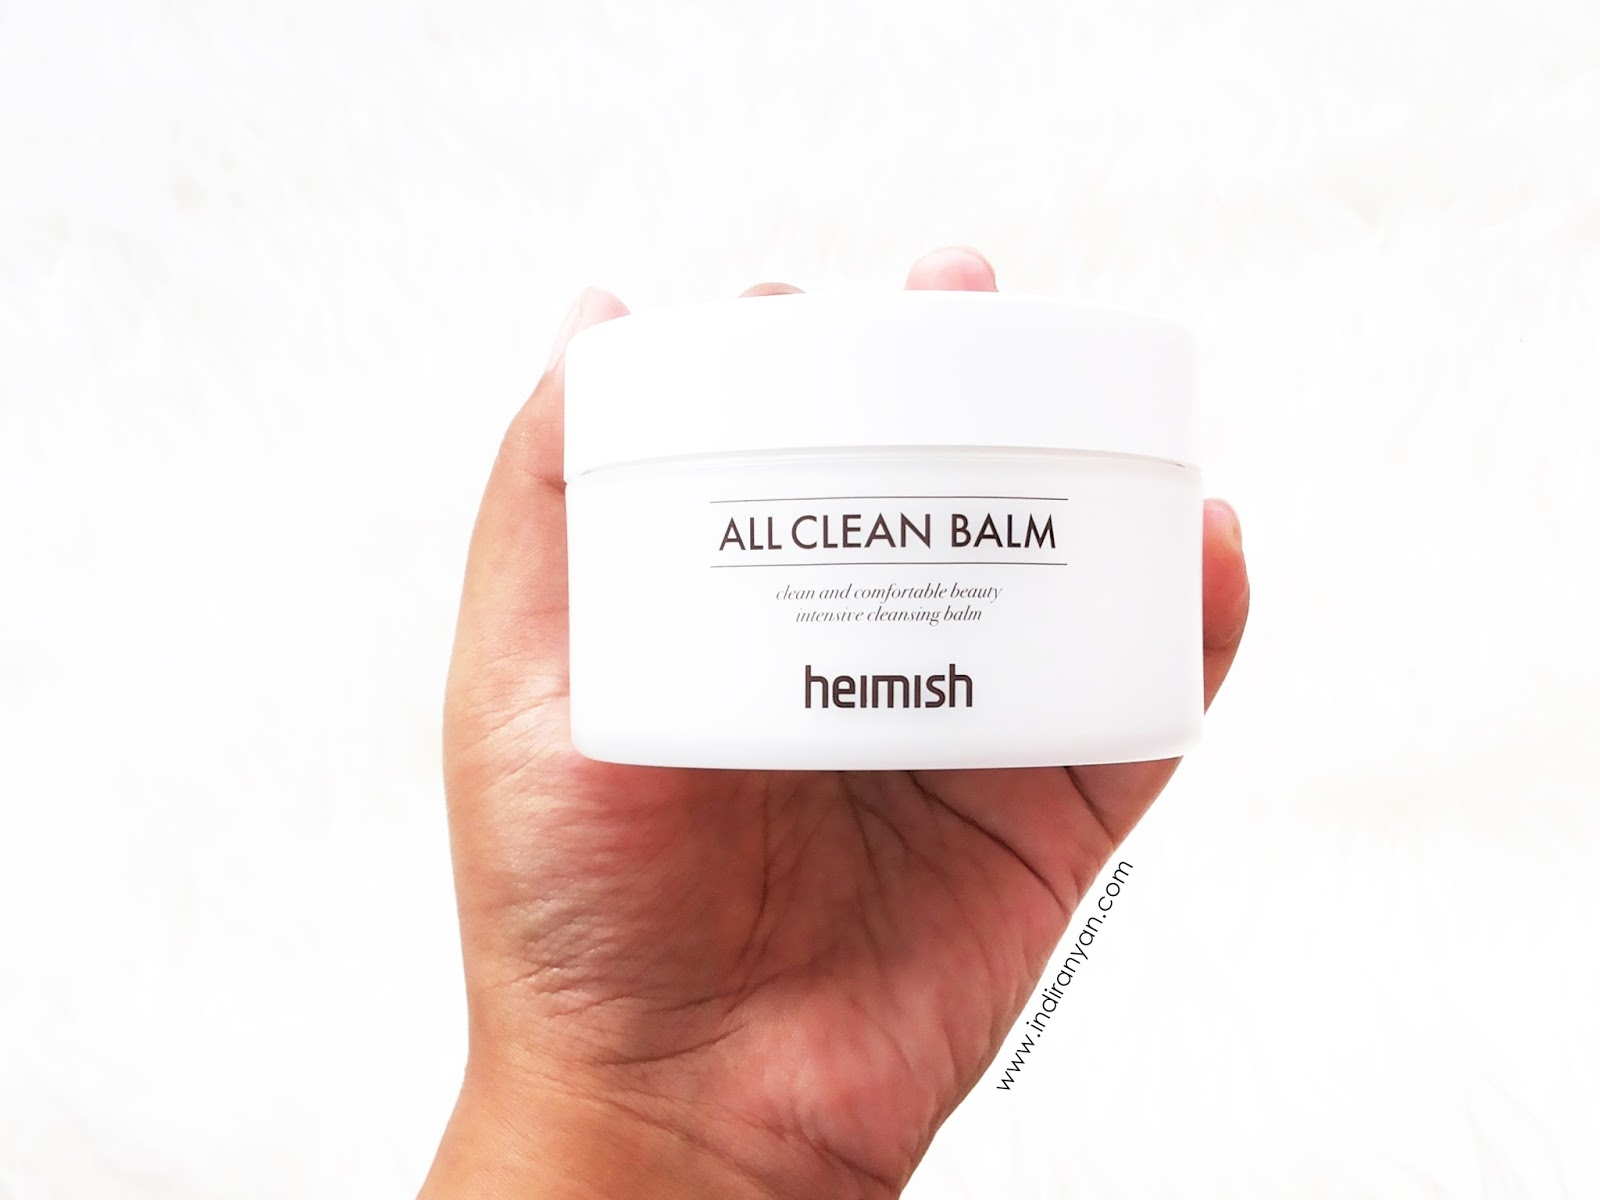 heimish-all-clean-balm, heimish-all-clean-balm-packaging